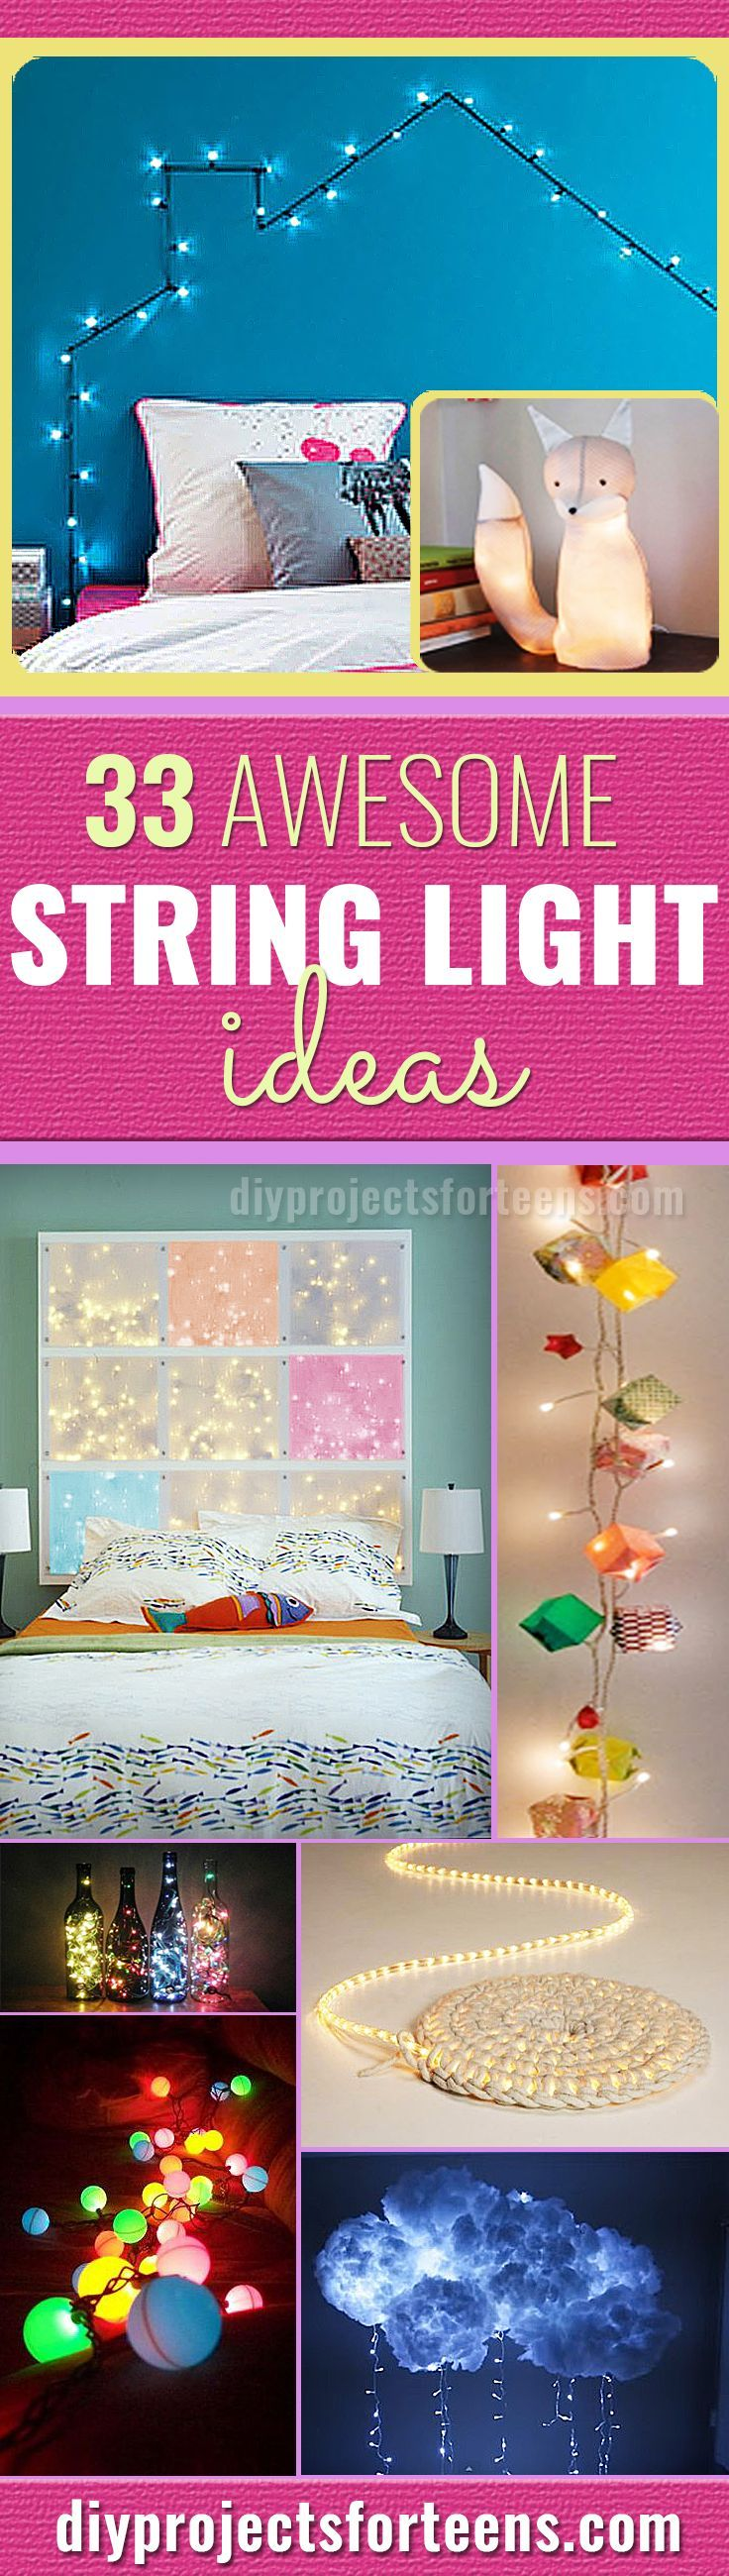 233 best DIY Room Decor & More images on Pinterest | Good ideas ...